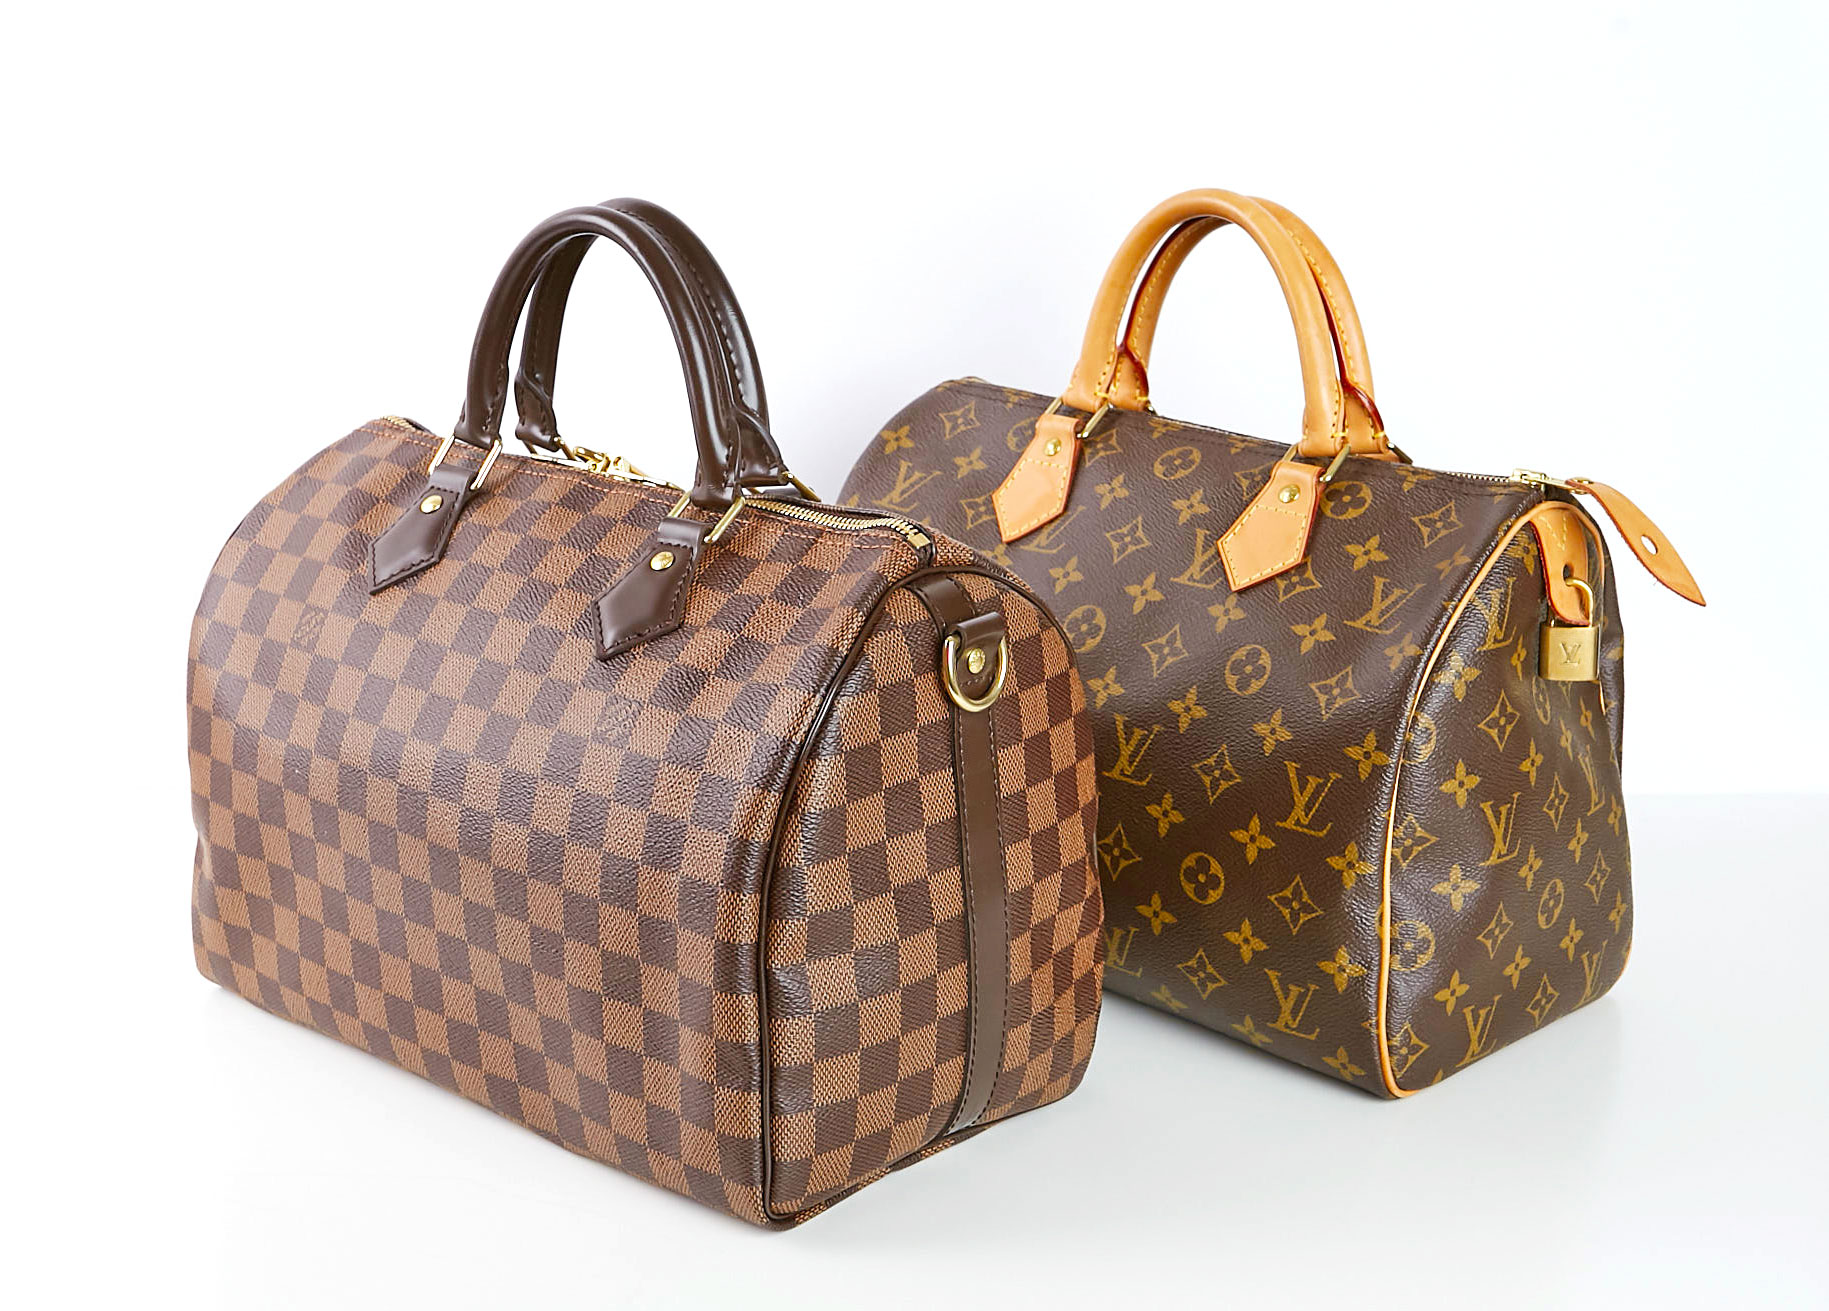 ca2981a96d6b Louis Vuitton Damier Ebene Speedy Bandouliere 30 and Louis Vuitton Monogram  Canvas Speedy 30 Bag